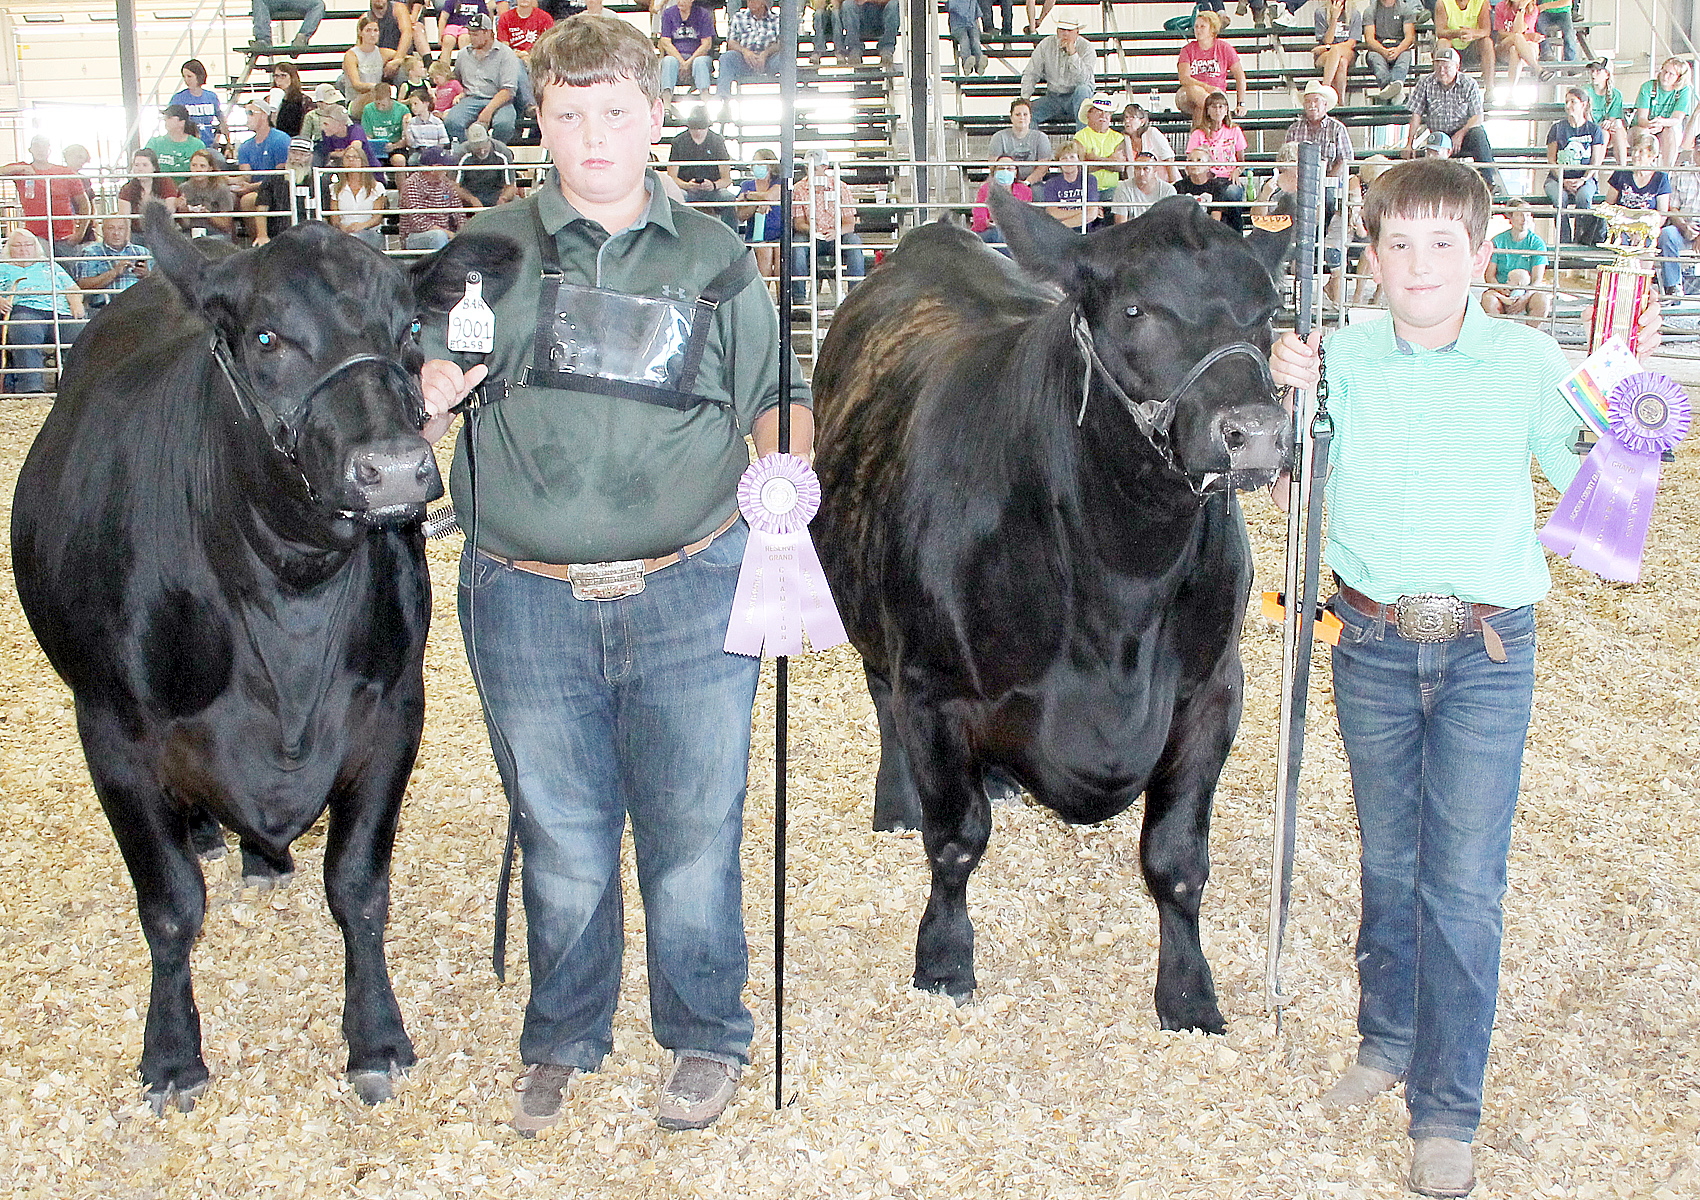 In junior beef showmanship, Paden Askren (right) of the North Jackson Jets was named champion while Ean Winsor (left) of the Lucky Stars was named reserve champion.